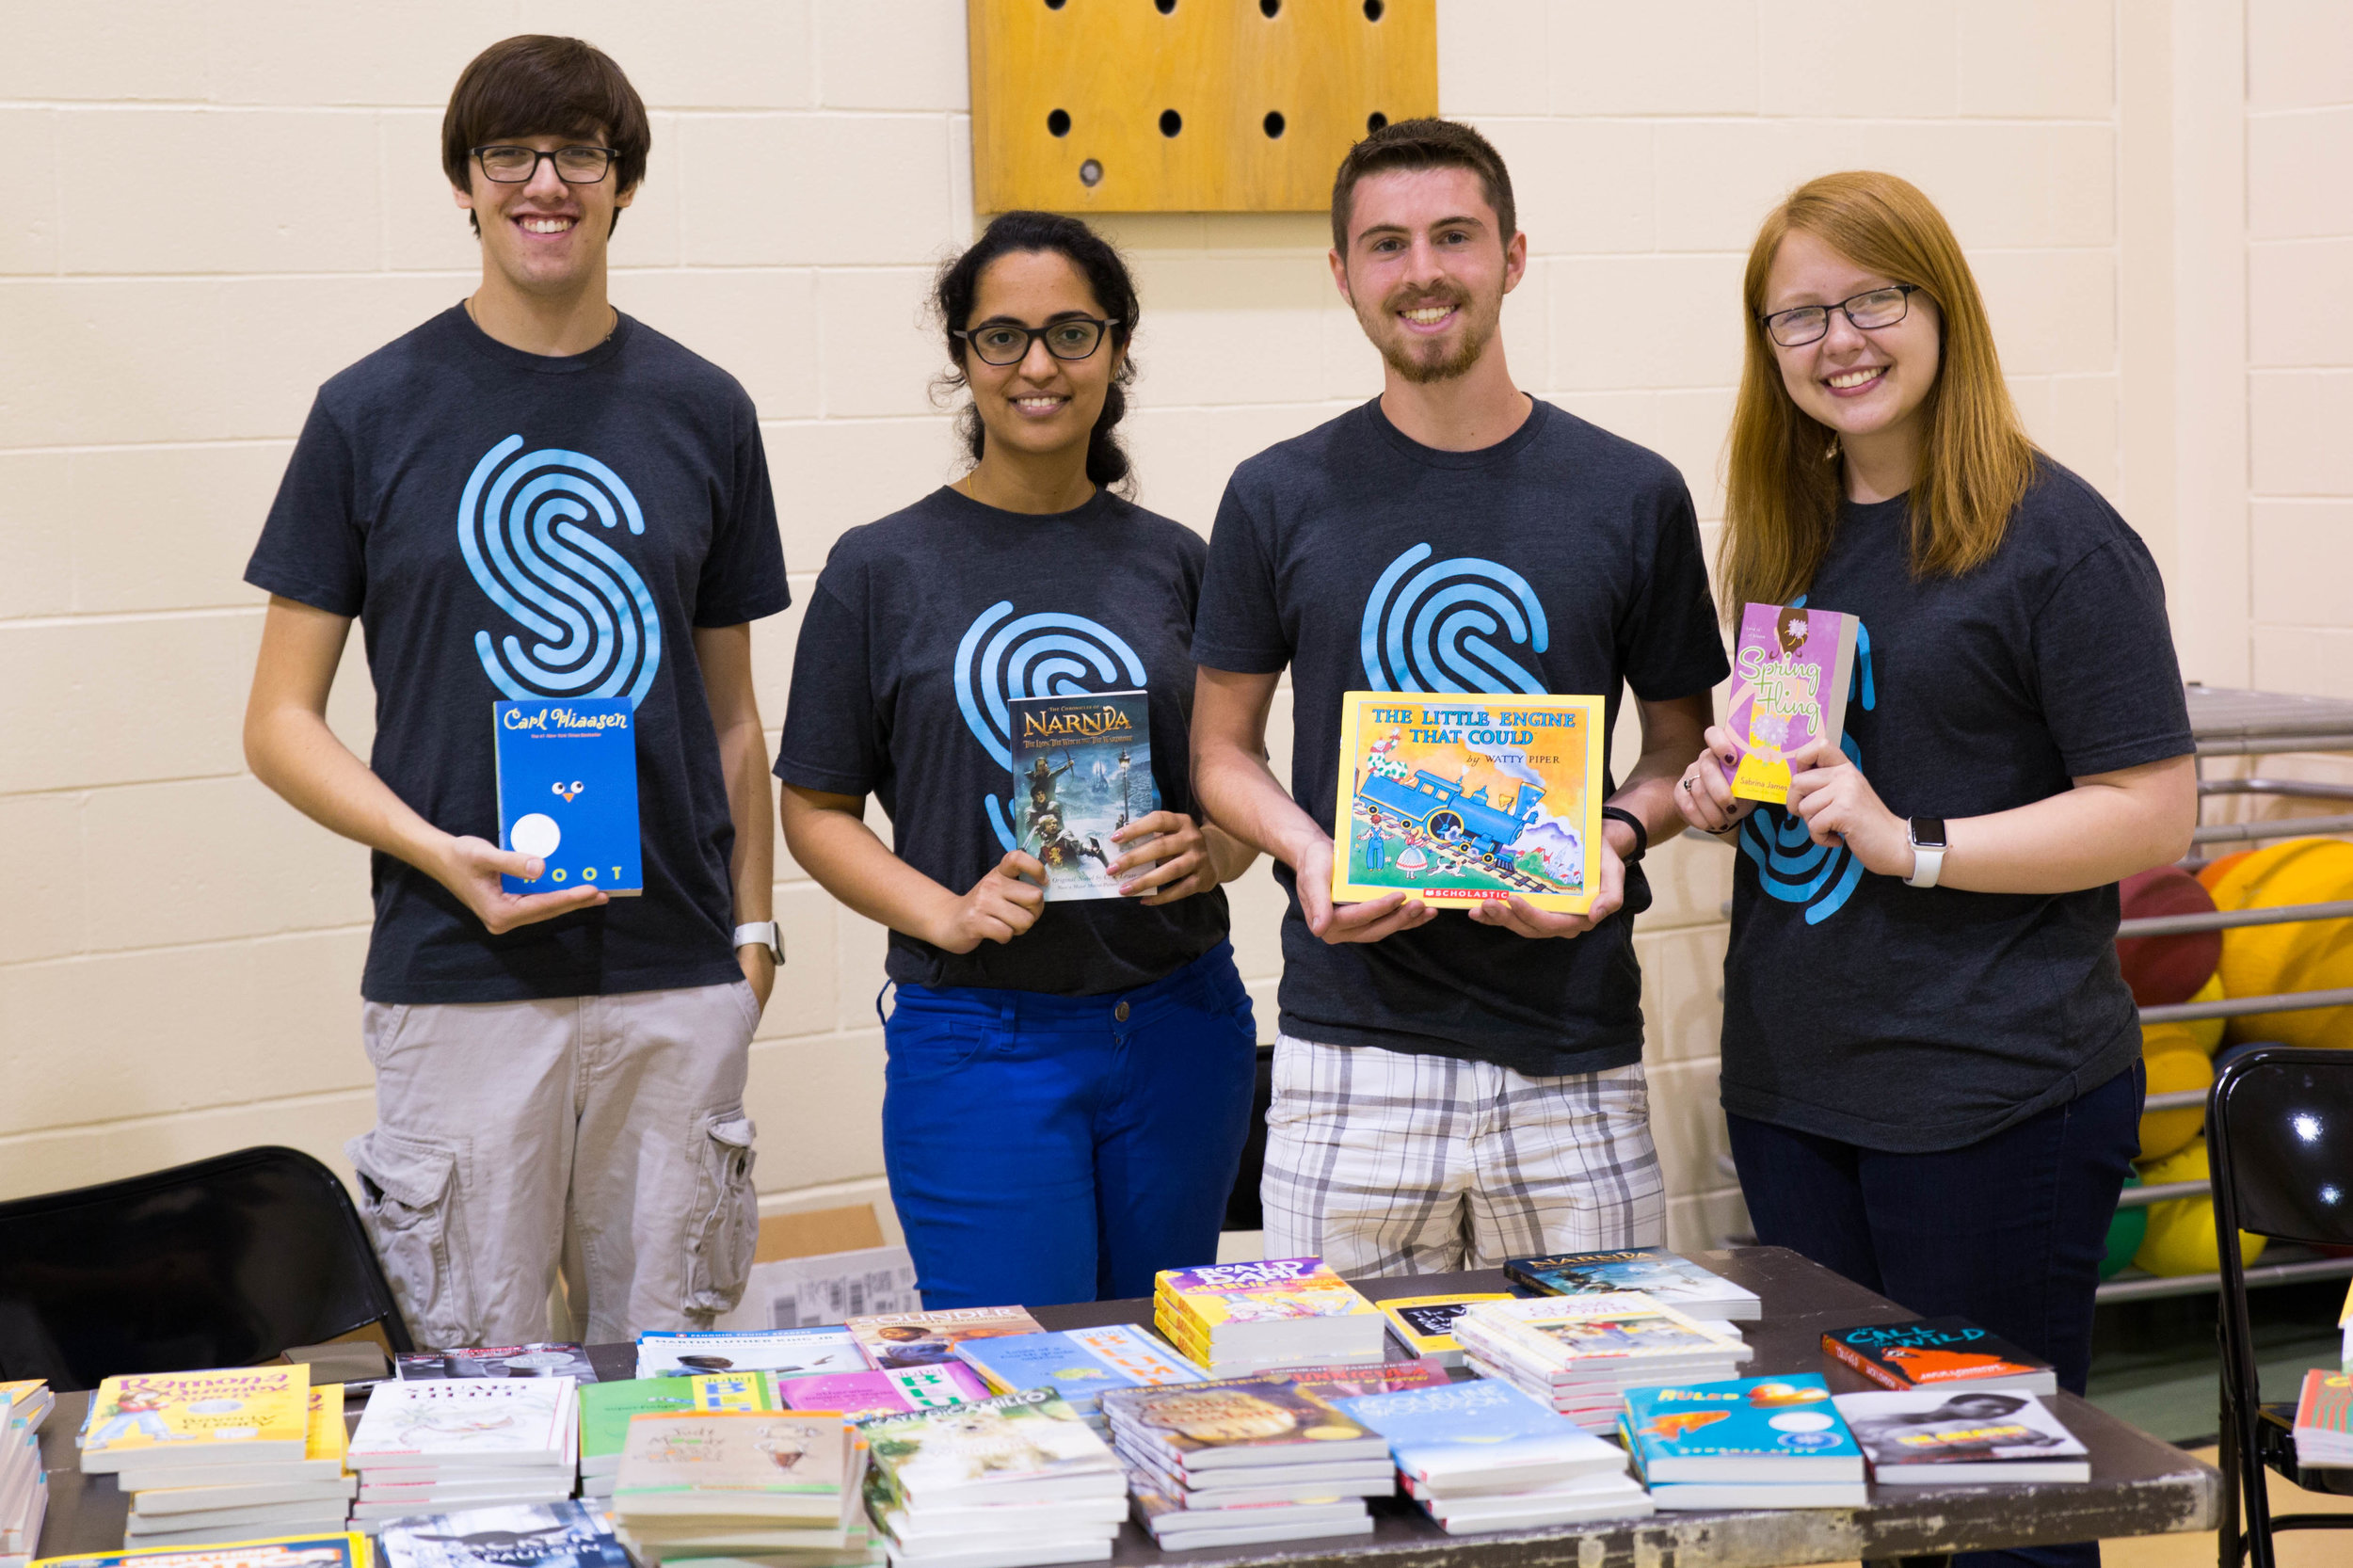 2017 interns host a book table during their intern-led community impact event, Read, Play, Go! This interactive event brought elementary students together with Spreetailers for a day of learning, creativity, and play. Spreetail donated books for the students to take home, plus new sports equipment shared with five area schools.